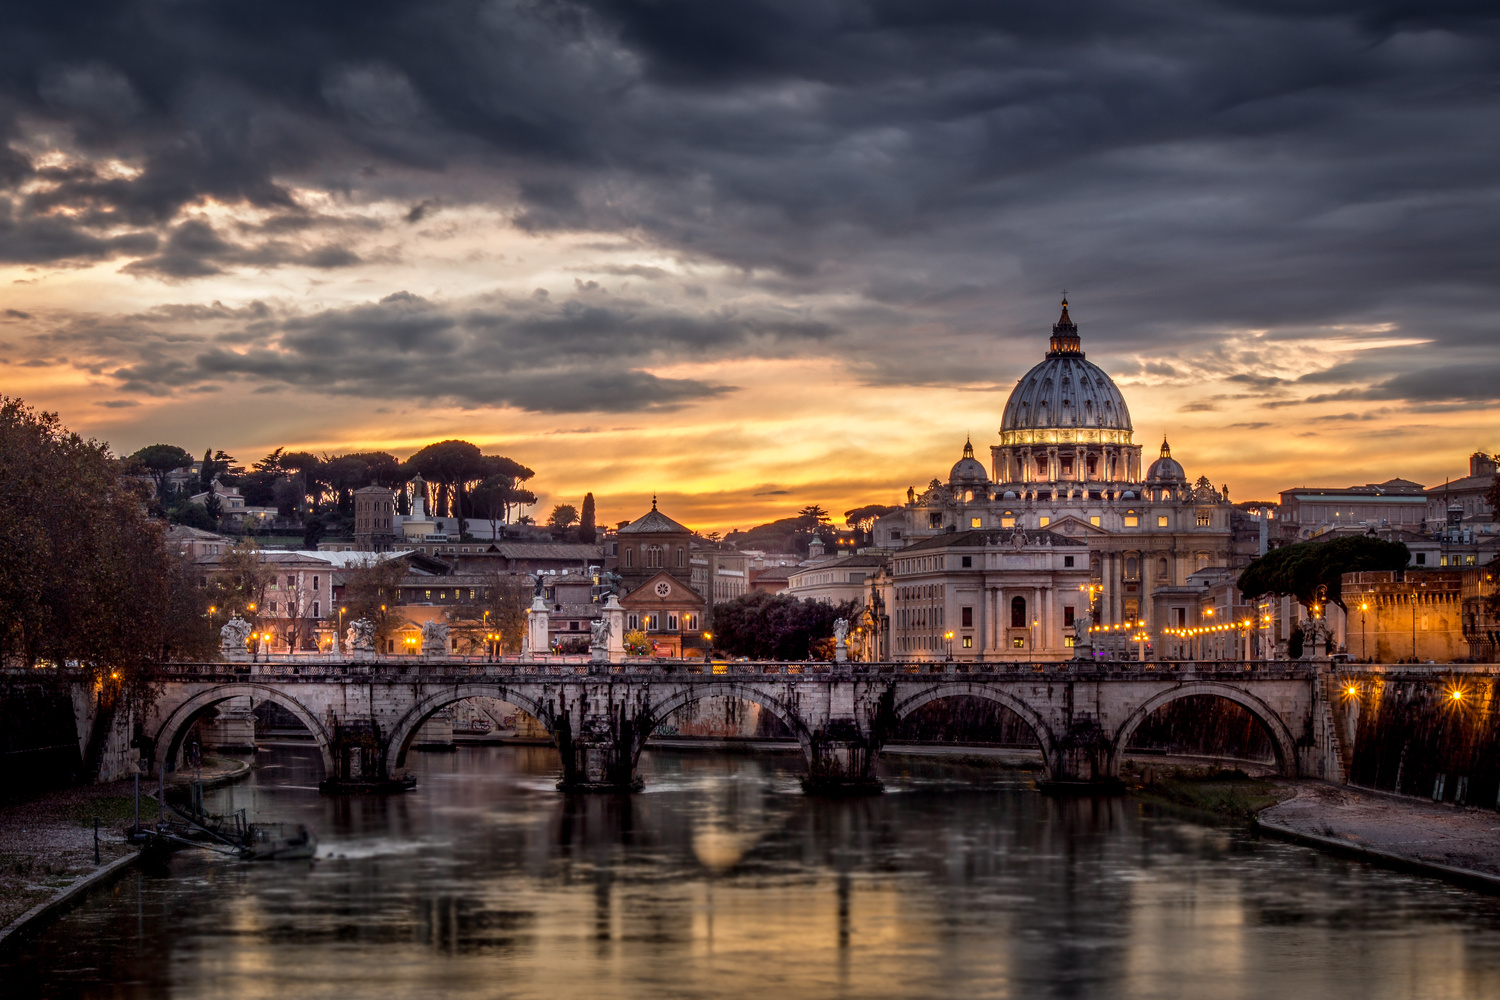 Vatican sunset by Keith Newman